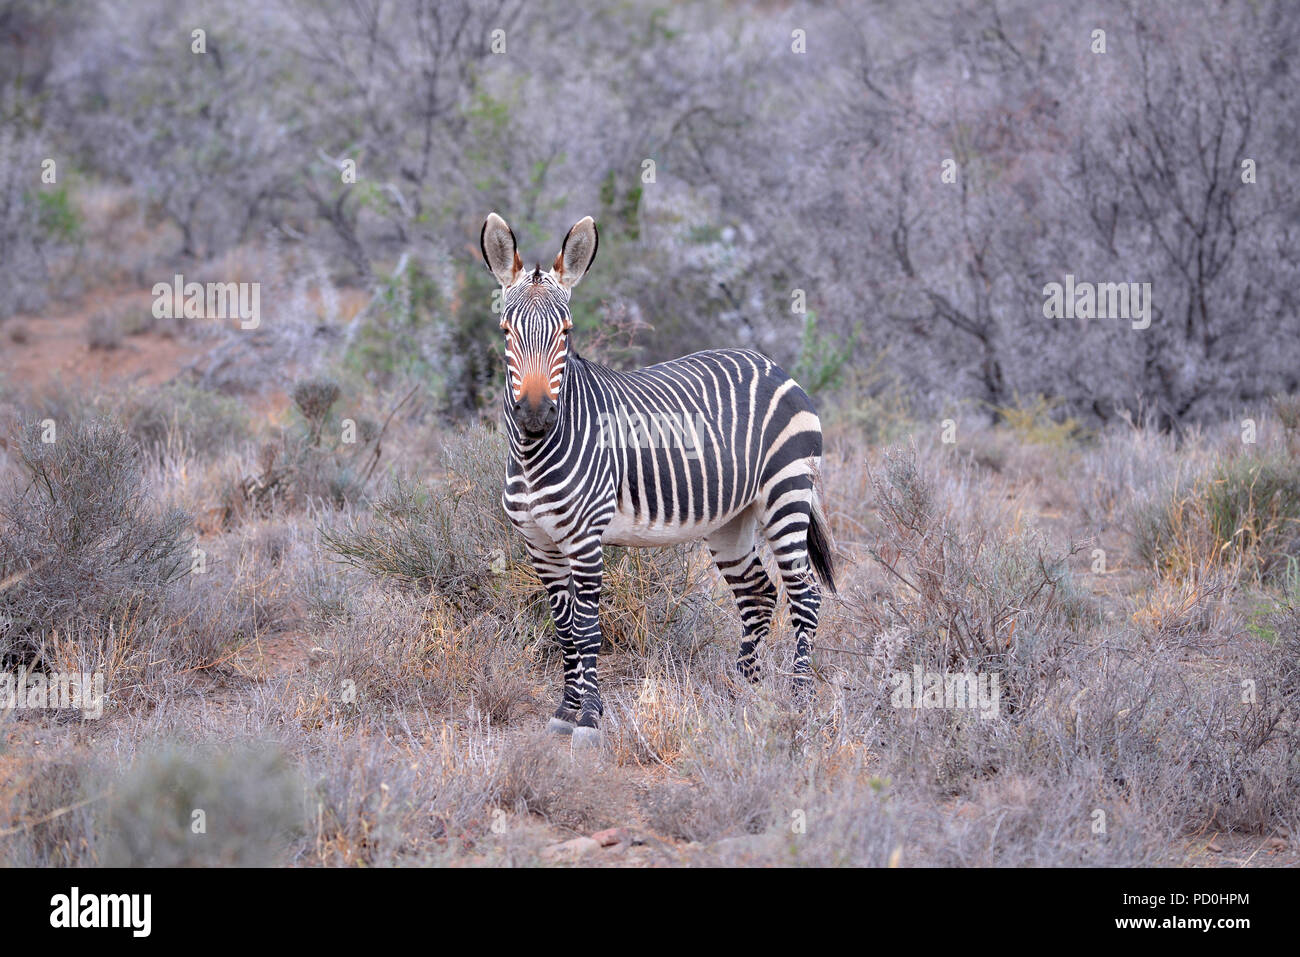 South Africa, a fantastic travel destination to experience third and first world together.Wet Cape mountain zebra among leafless thorn trees. Stock Photo